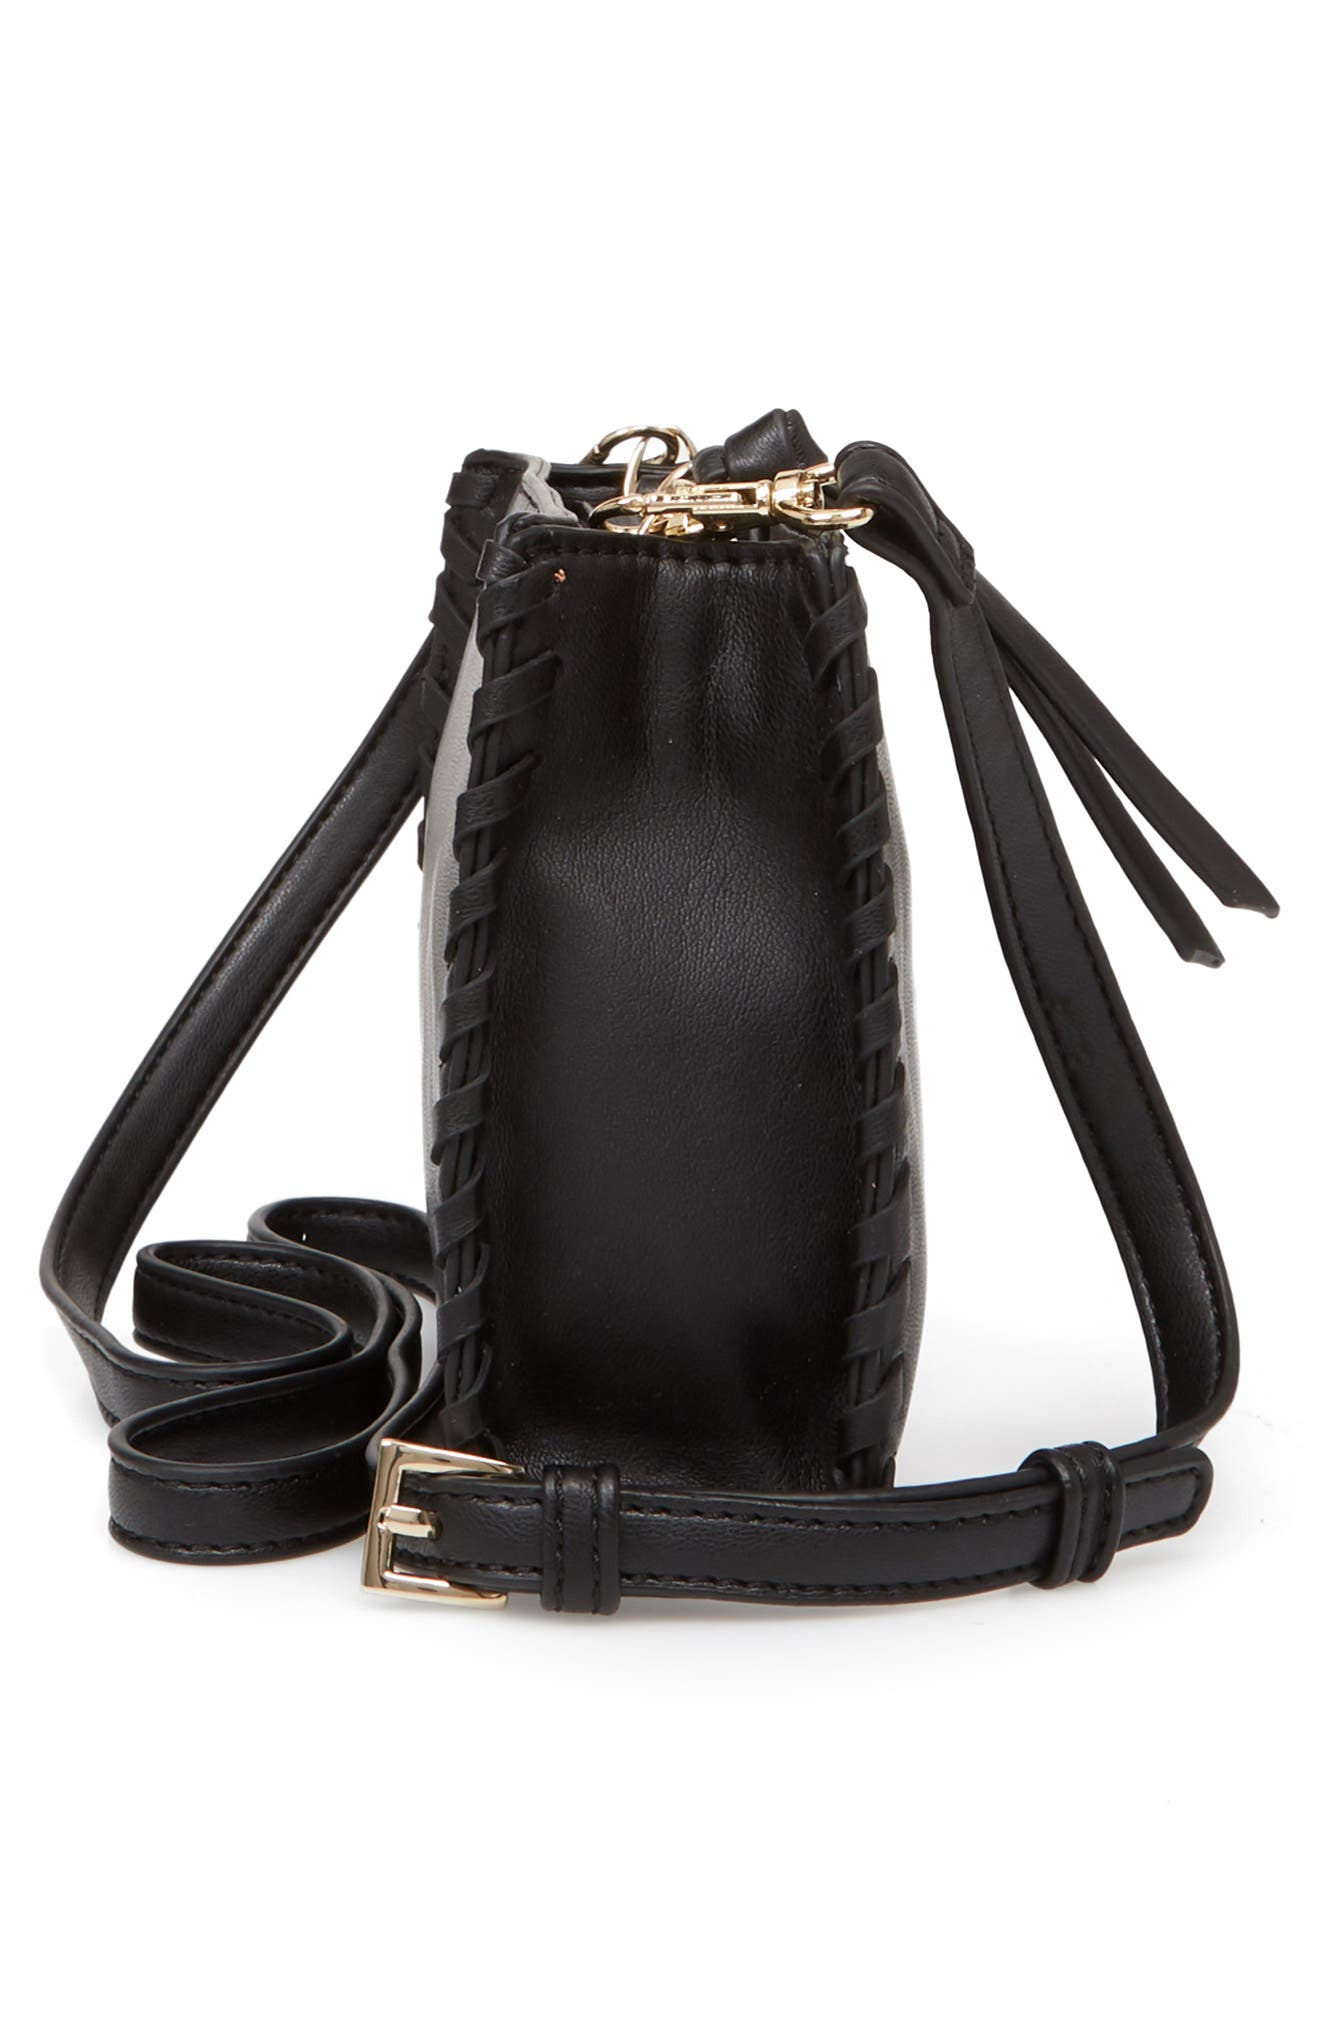 Cadence Whipstitch Faux Leather Crossbody Bag,                             Alternate thumbnail 5, color,                             Black